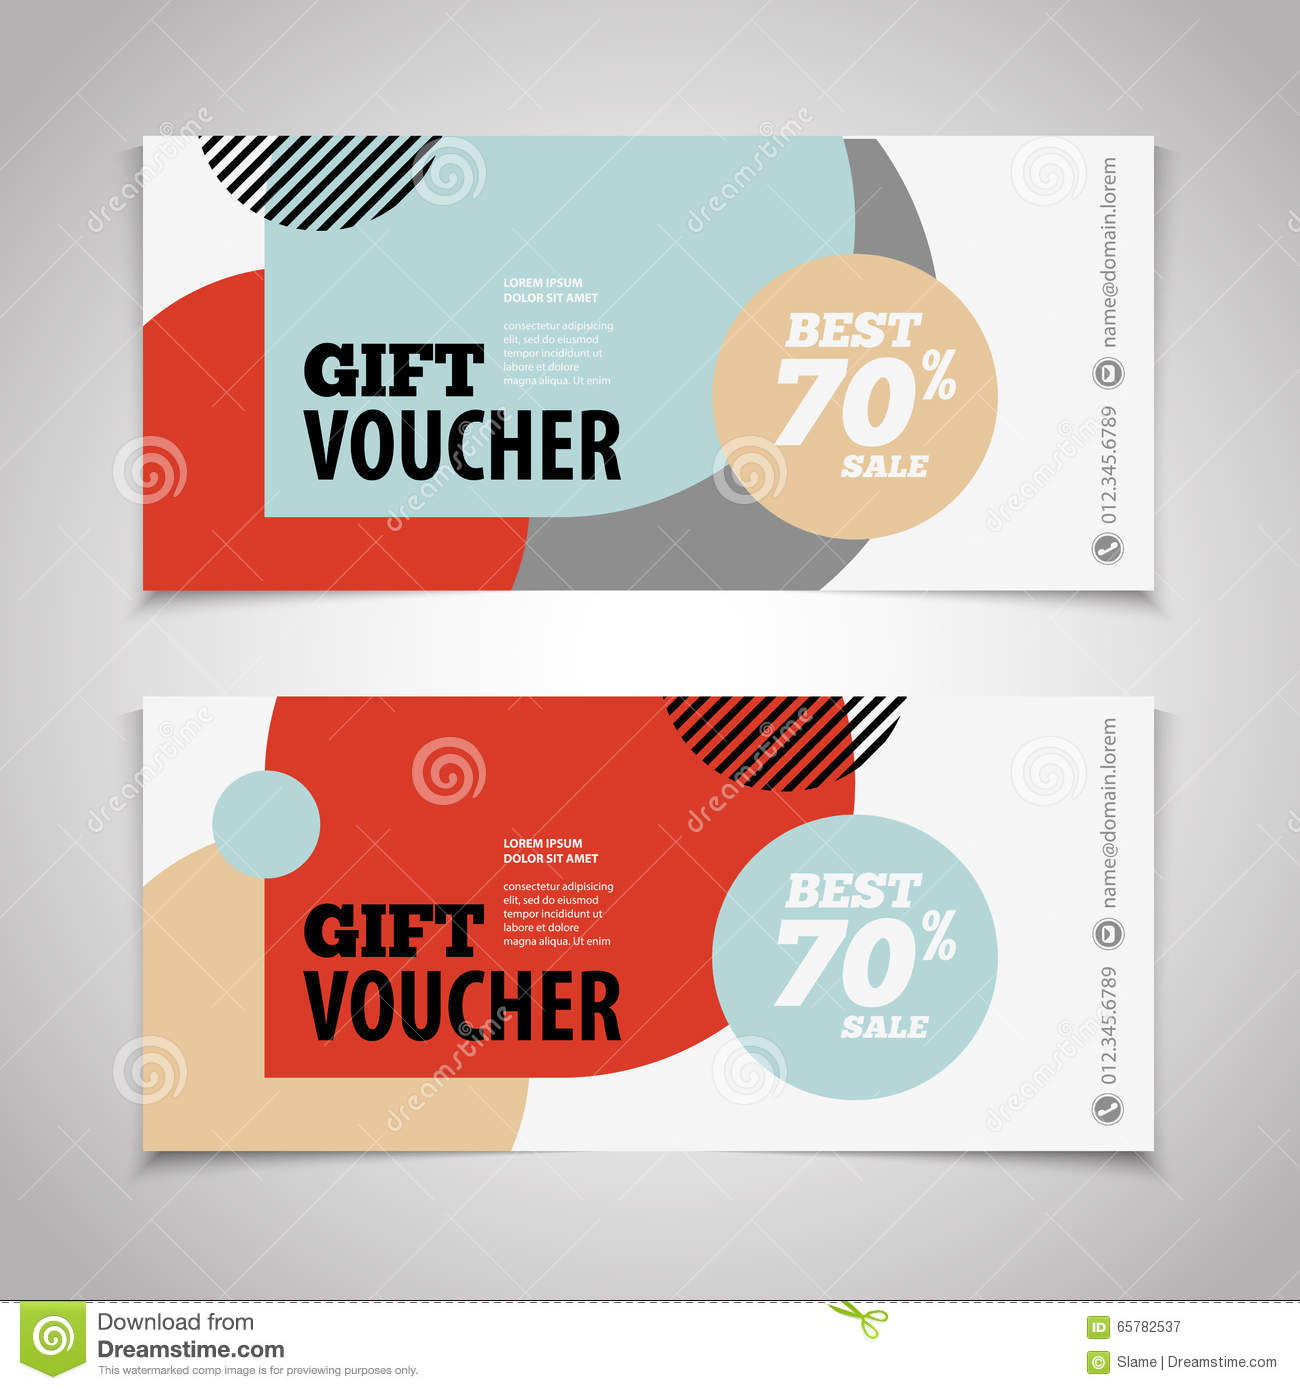 abstract gift voucher or coupon design template voucher design abstract gift voucher or coupon design template voucher design royalty stock photography